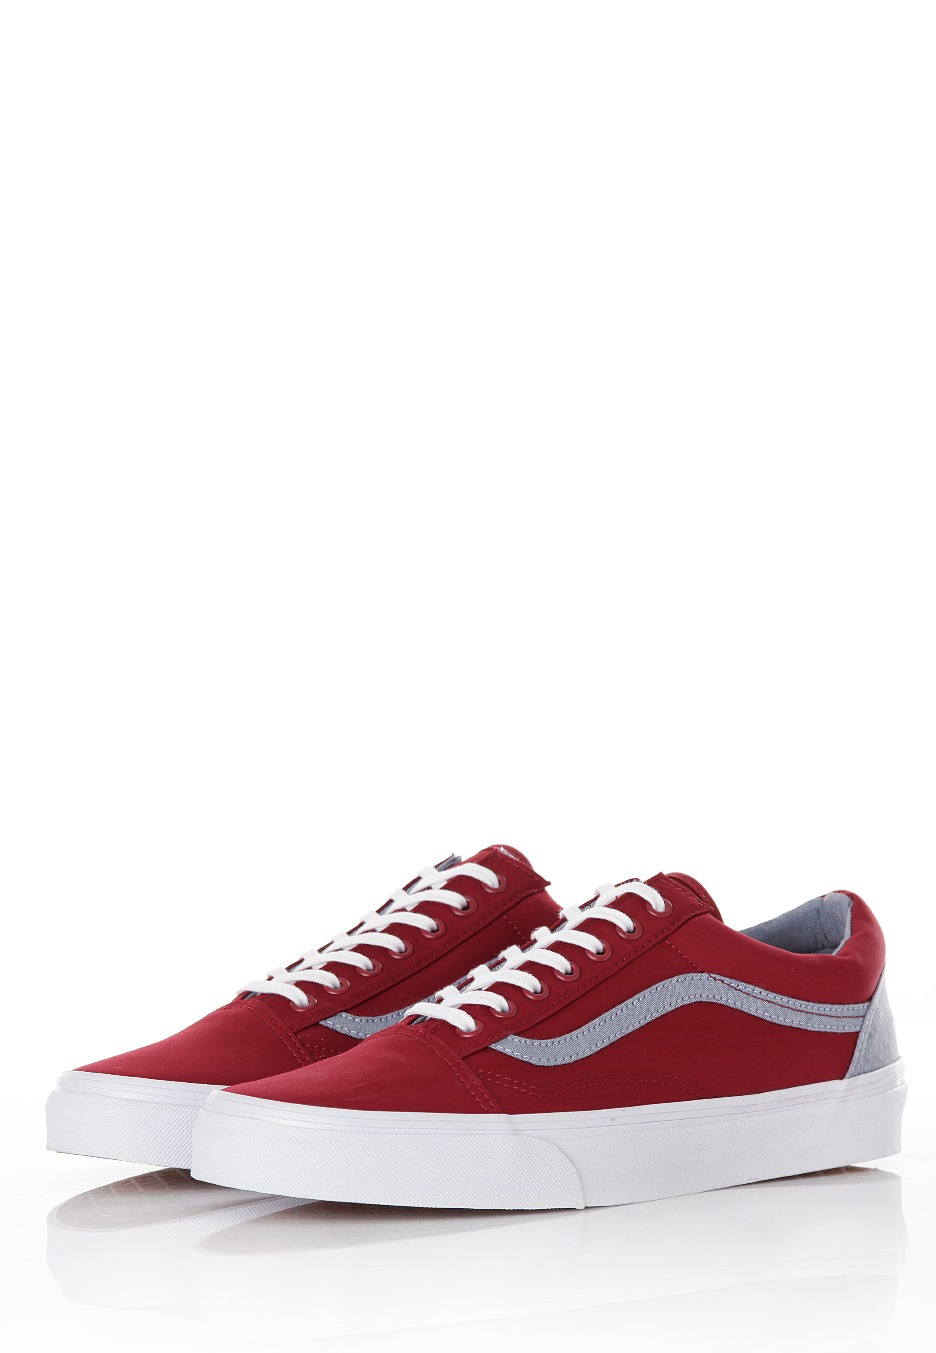 1aabb109ae Vans - Old Skool T C Biking Red Captain s Blue - Buty - Impericon.com PL